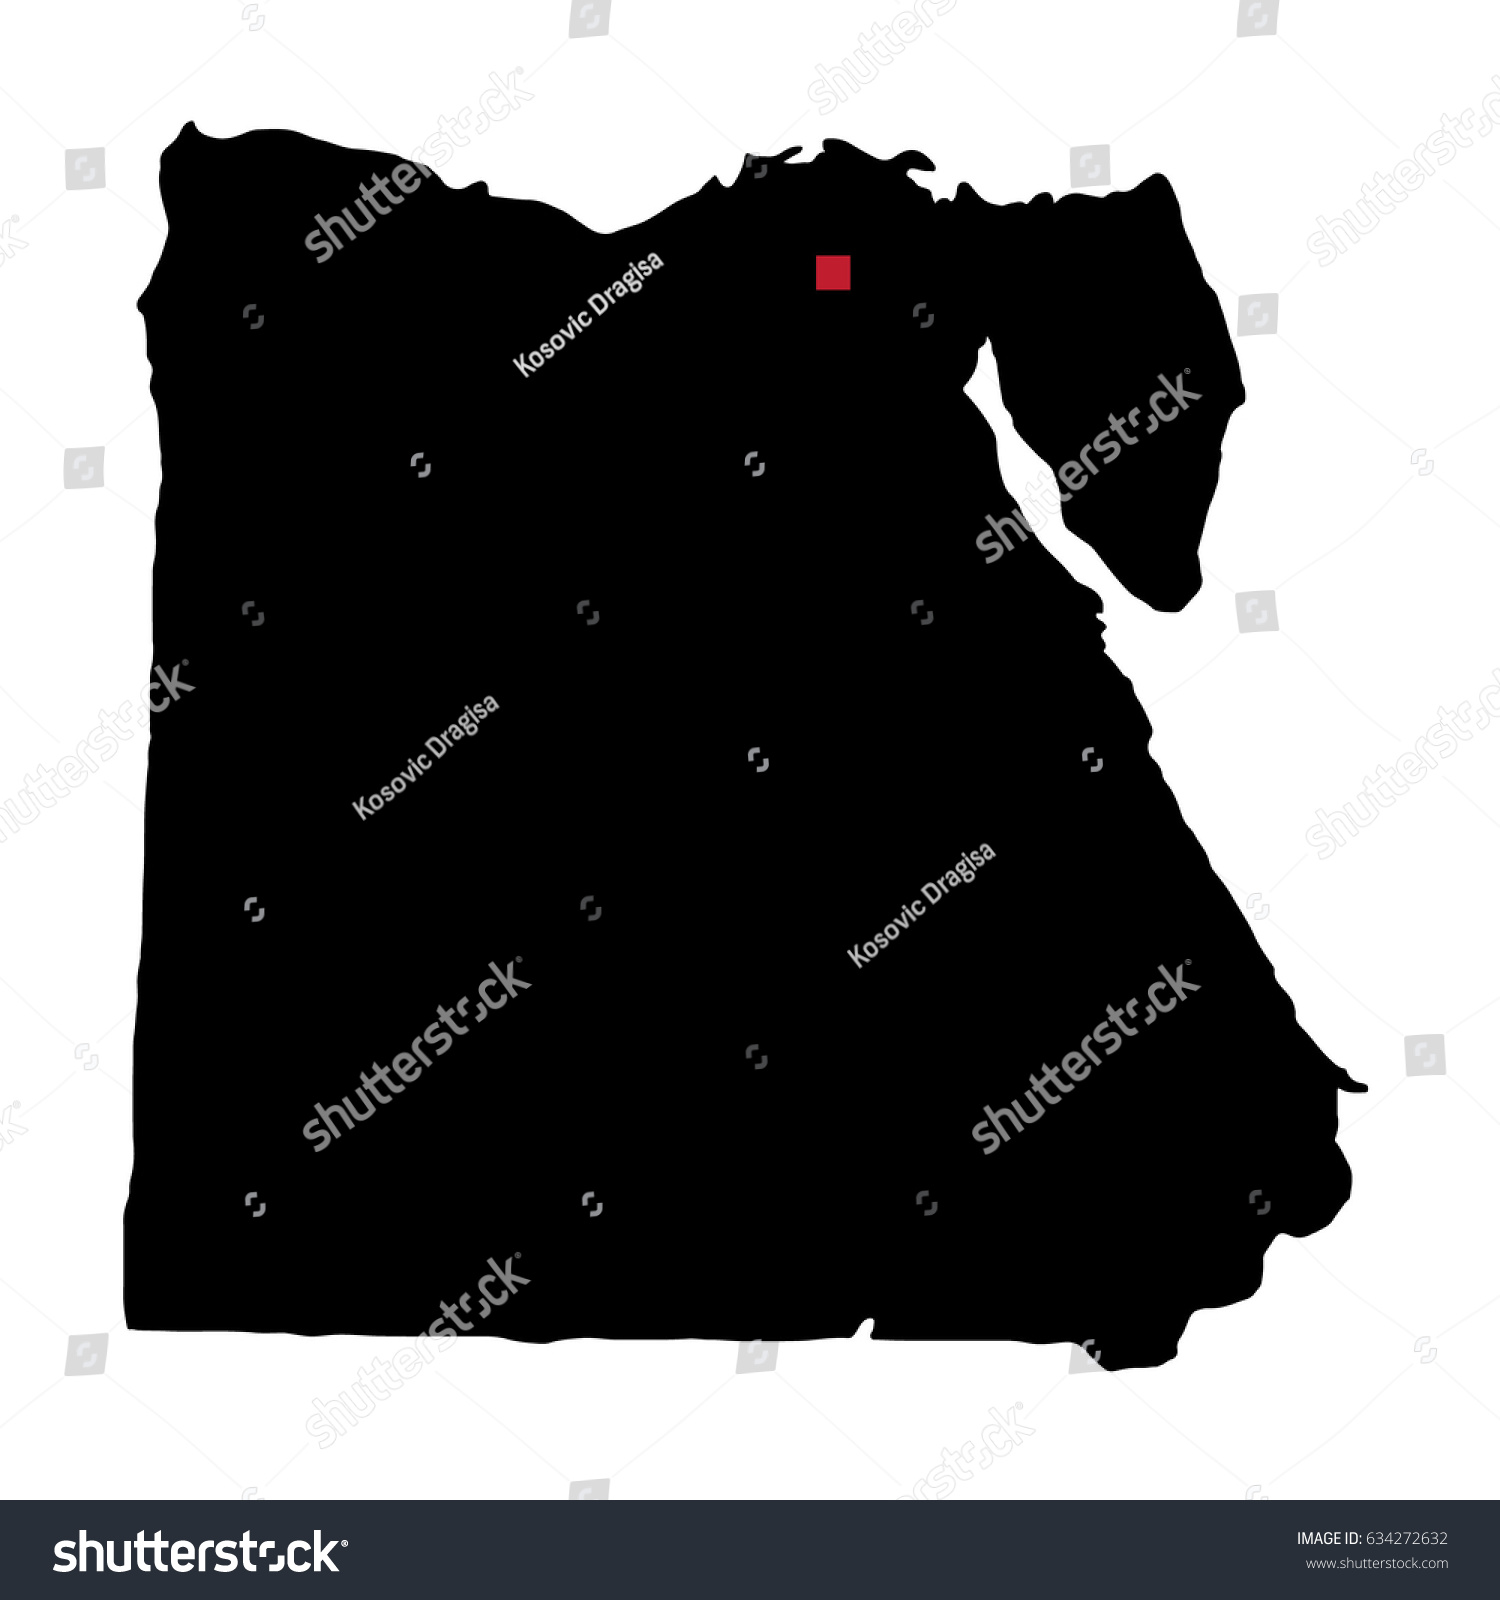 Map Silhouette Egypt Capital City Stock Vector (Royalty Free ... on